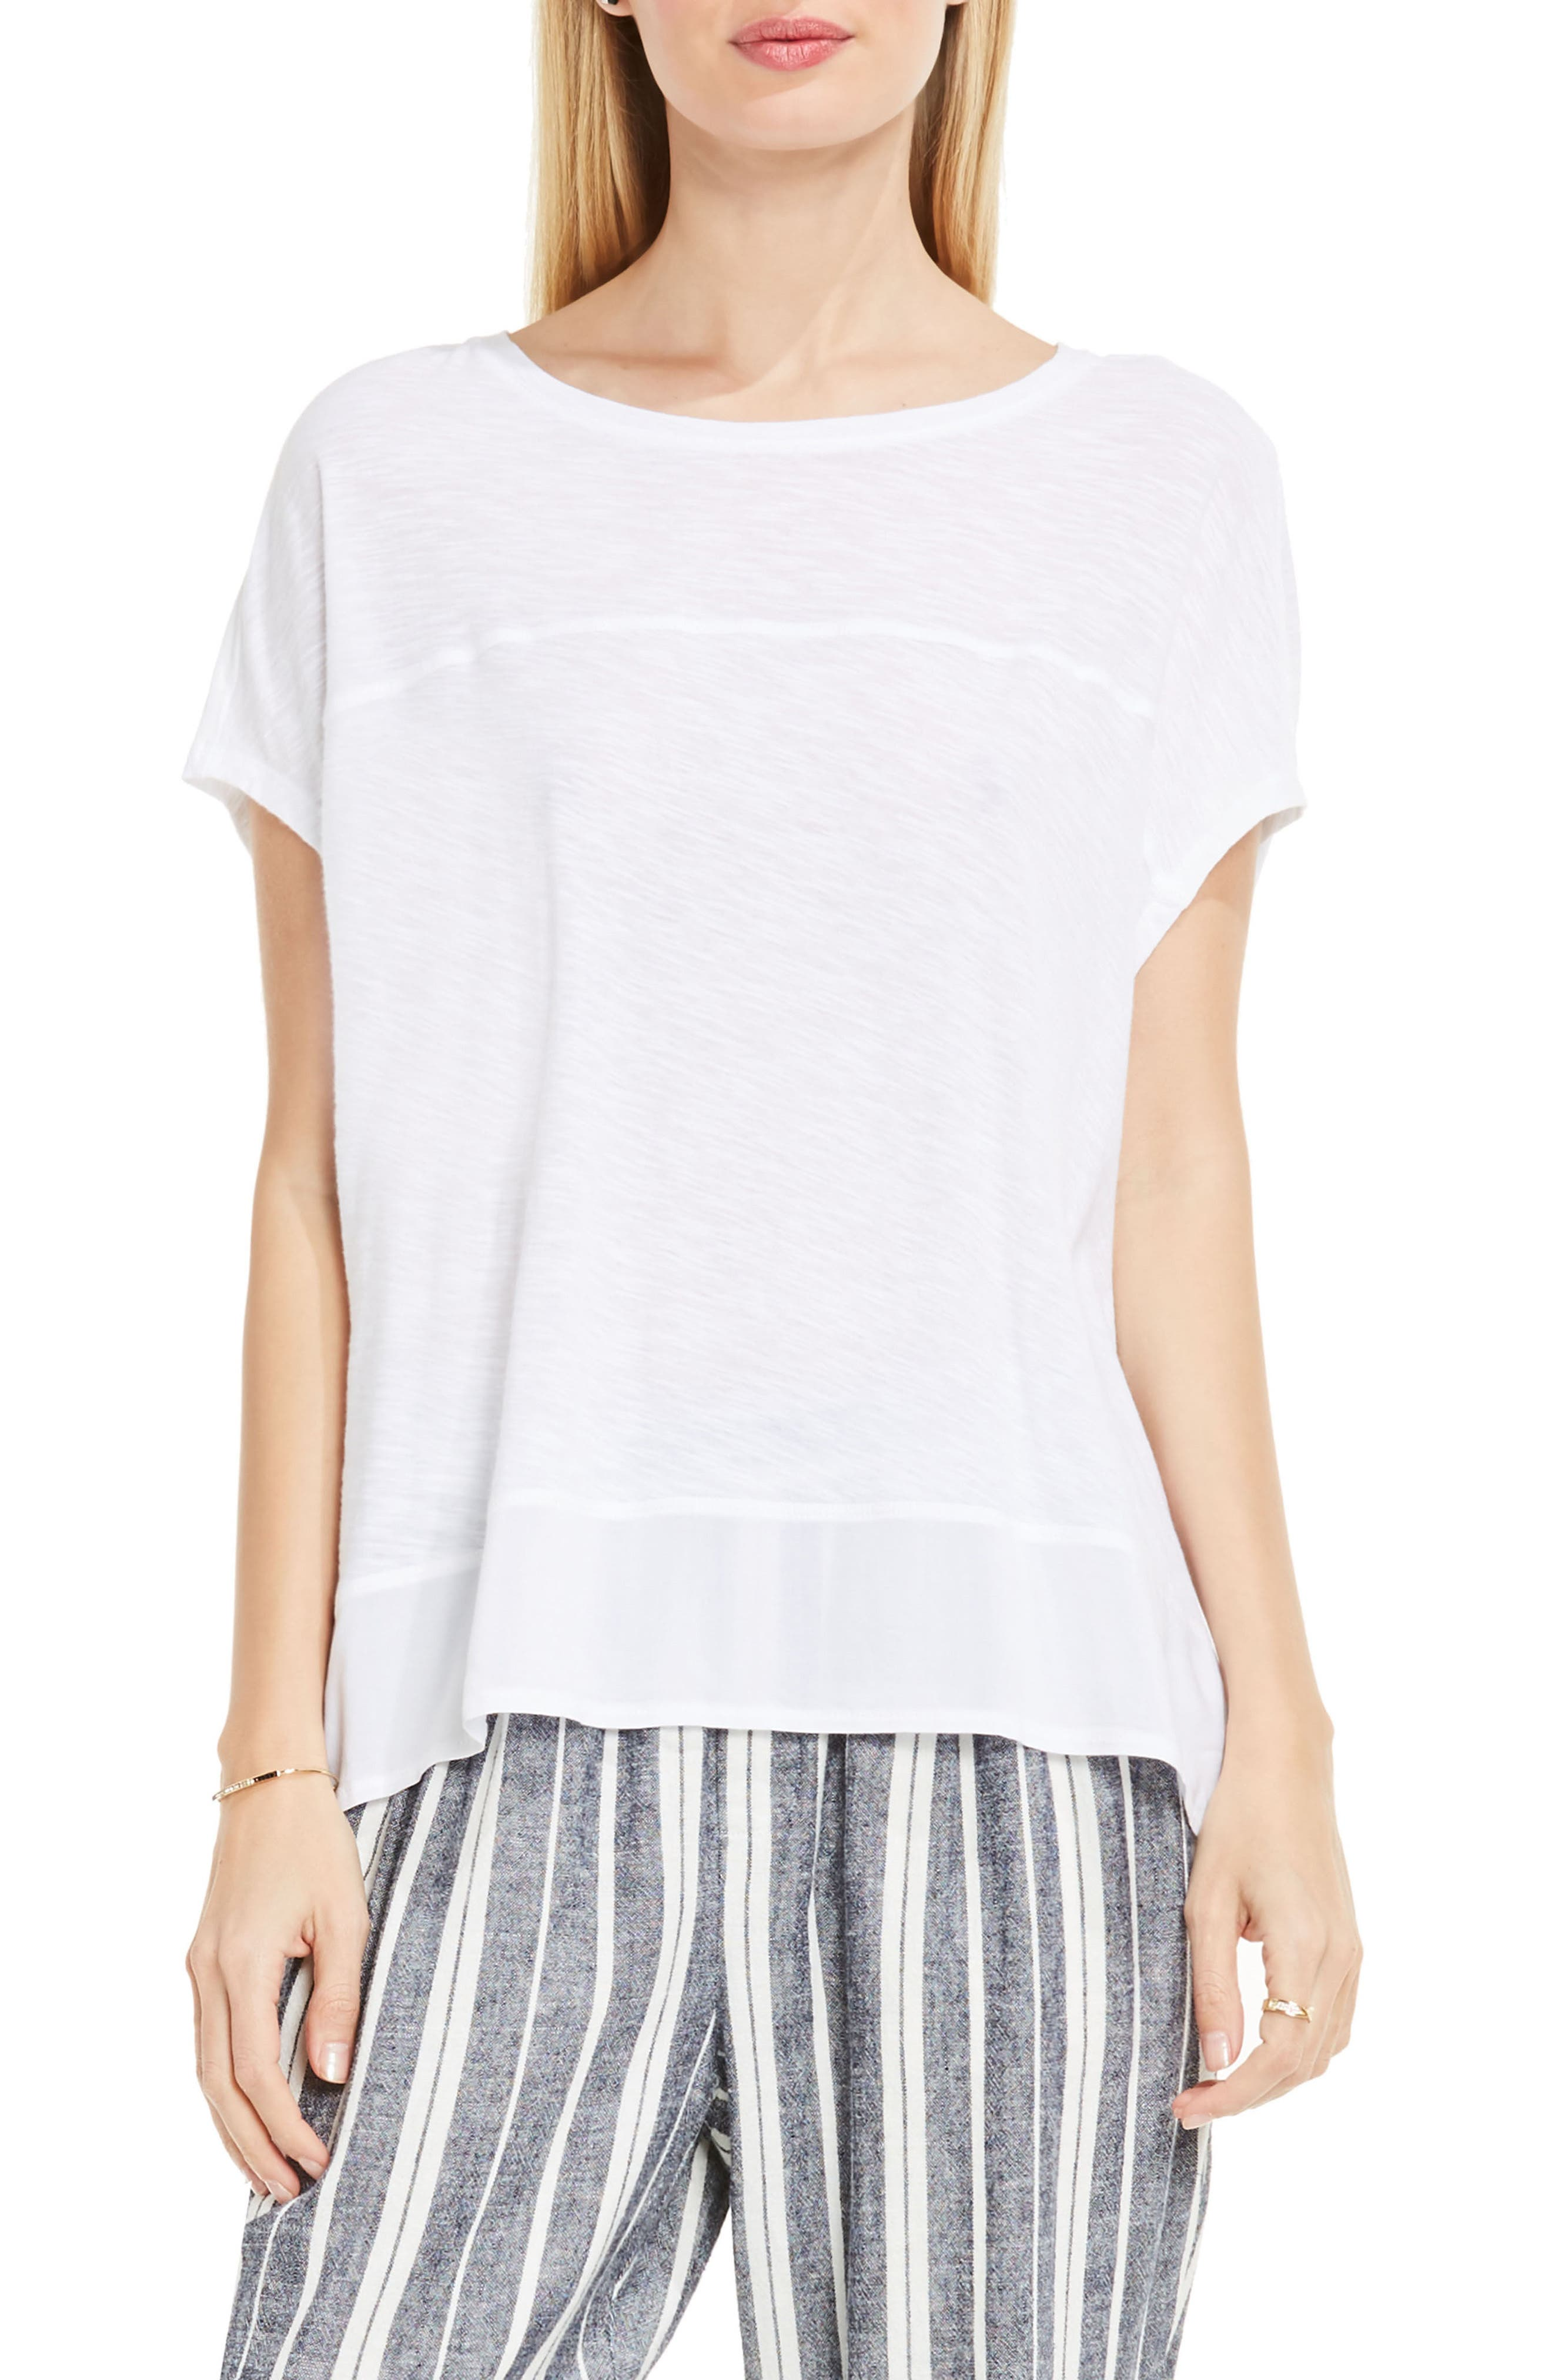 Main Image - Two by Vince Camuto Chiffon High/Low Hem Knit Tee